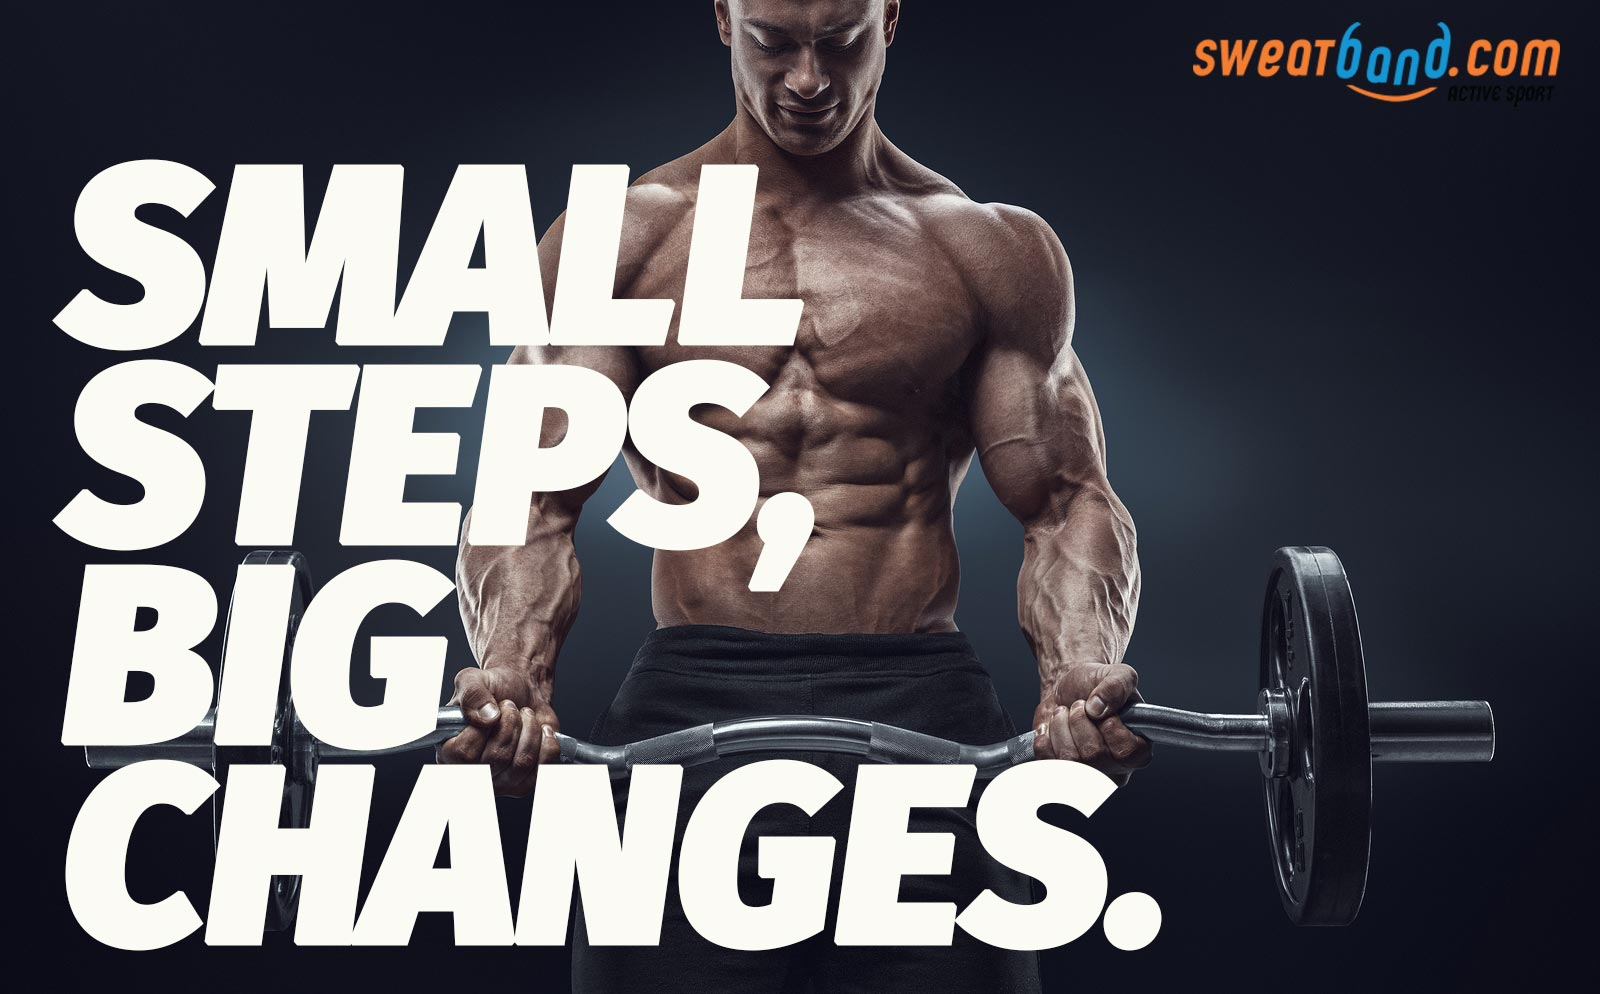 Small Steps, Big Changes - Turning Bad Habits into Good Habits